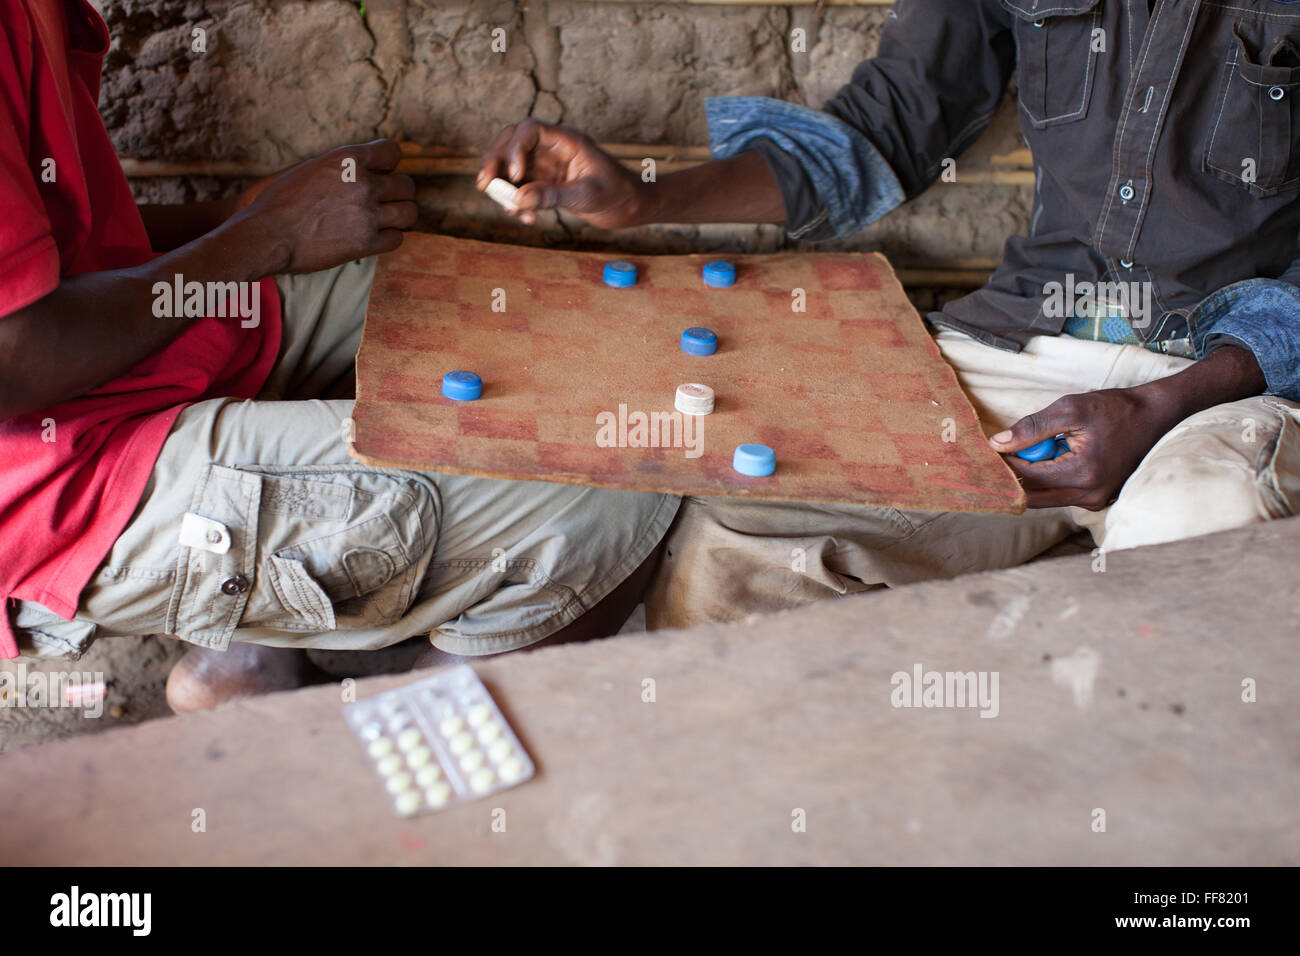 A packet of antimalarial drugs next to two men playing a game of draughts with bottle tops. - Stock Image